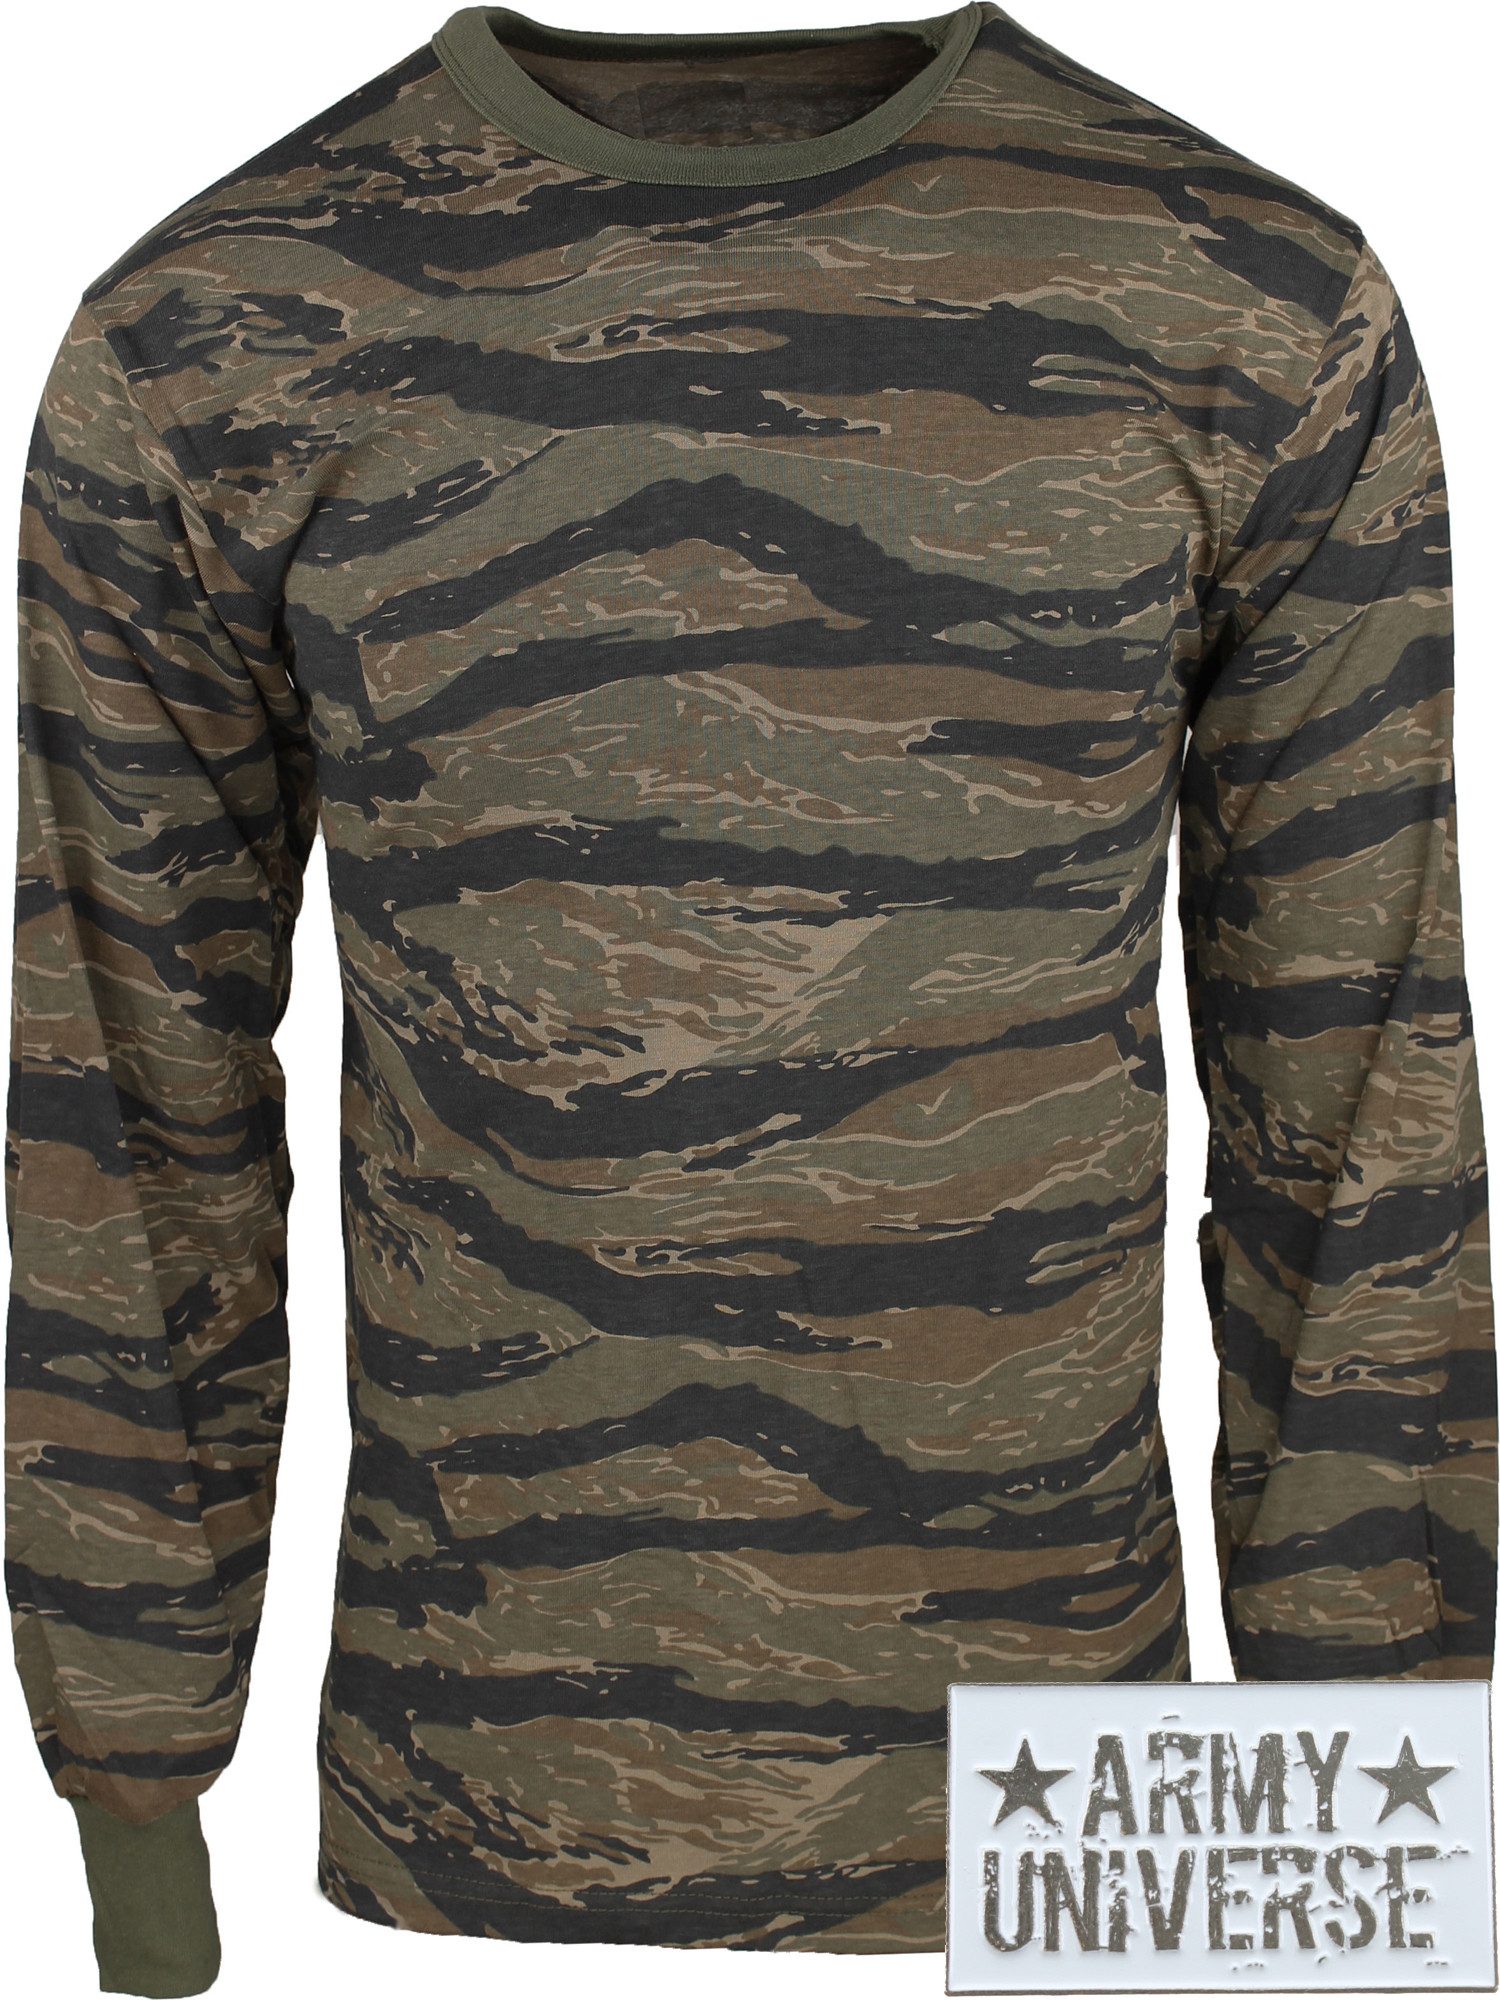 ... Tiger Stripe Camouflage Military Crewneck Long Sleeve T Shirt w   ArmyUniverse® Pin ... 502f80b1a